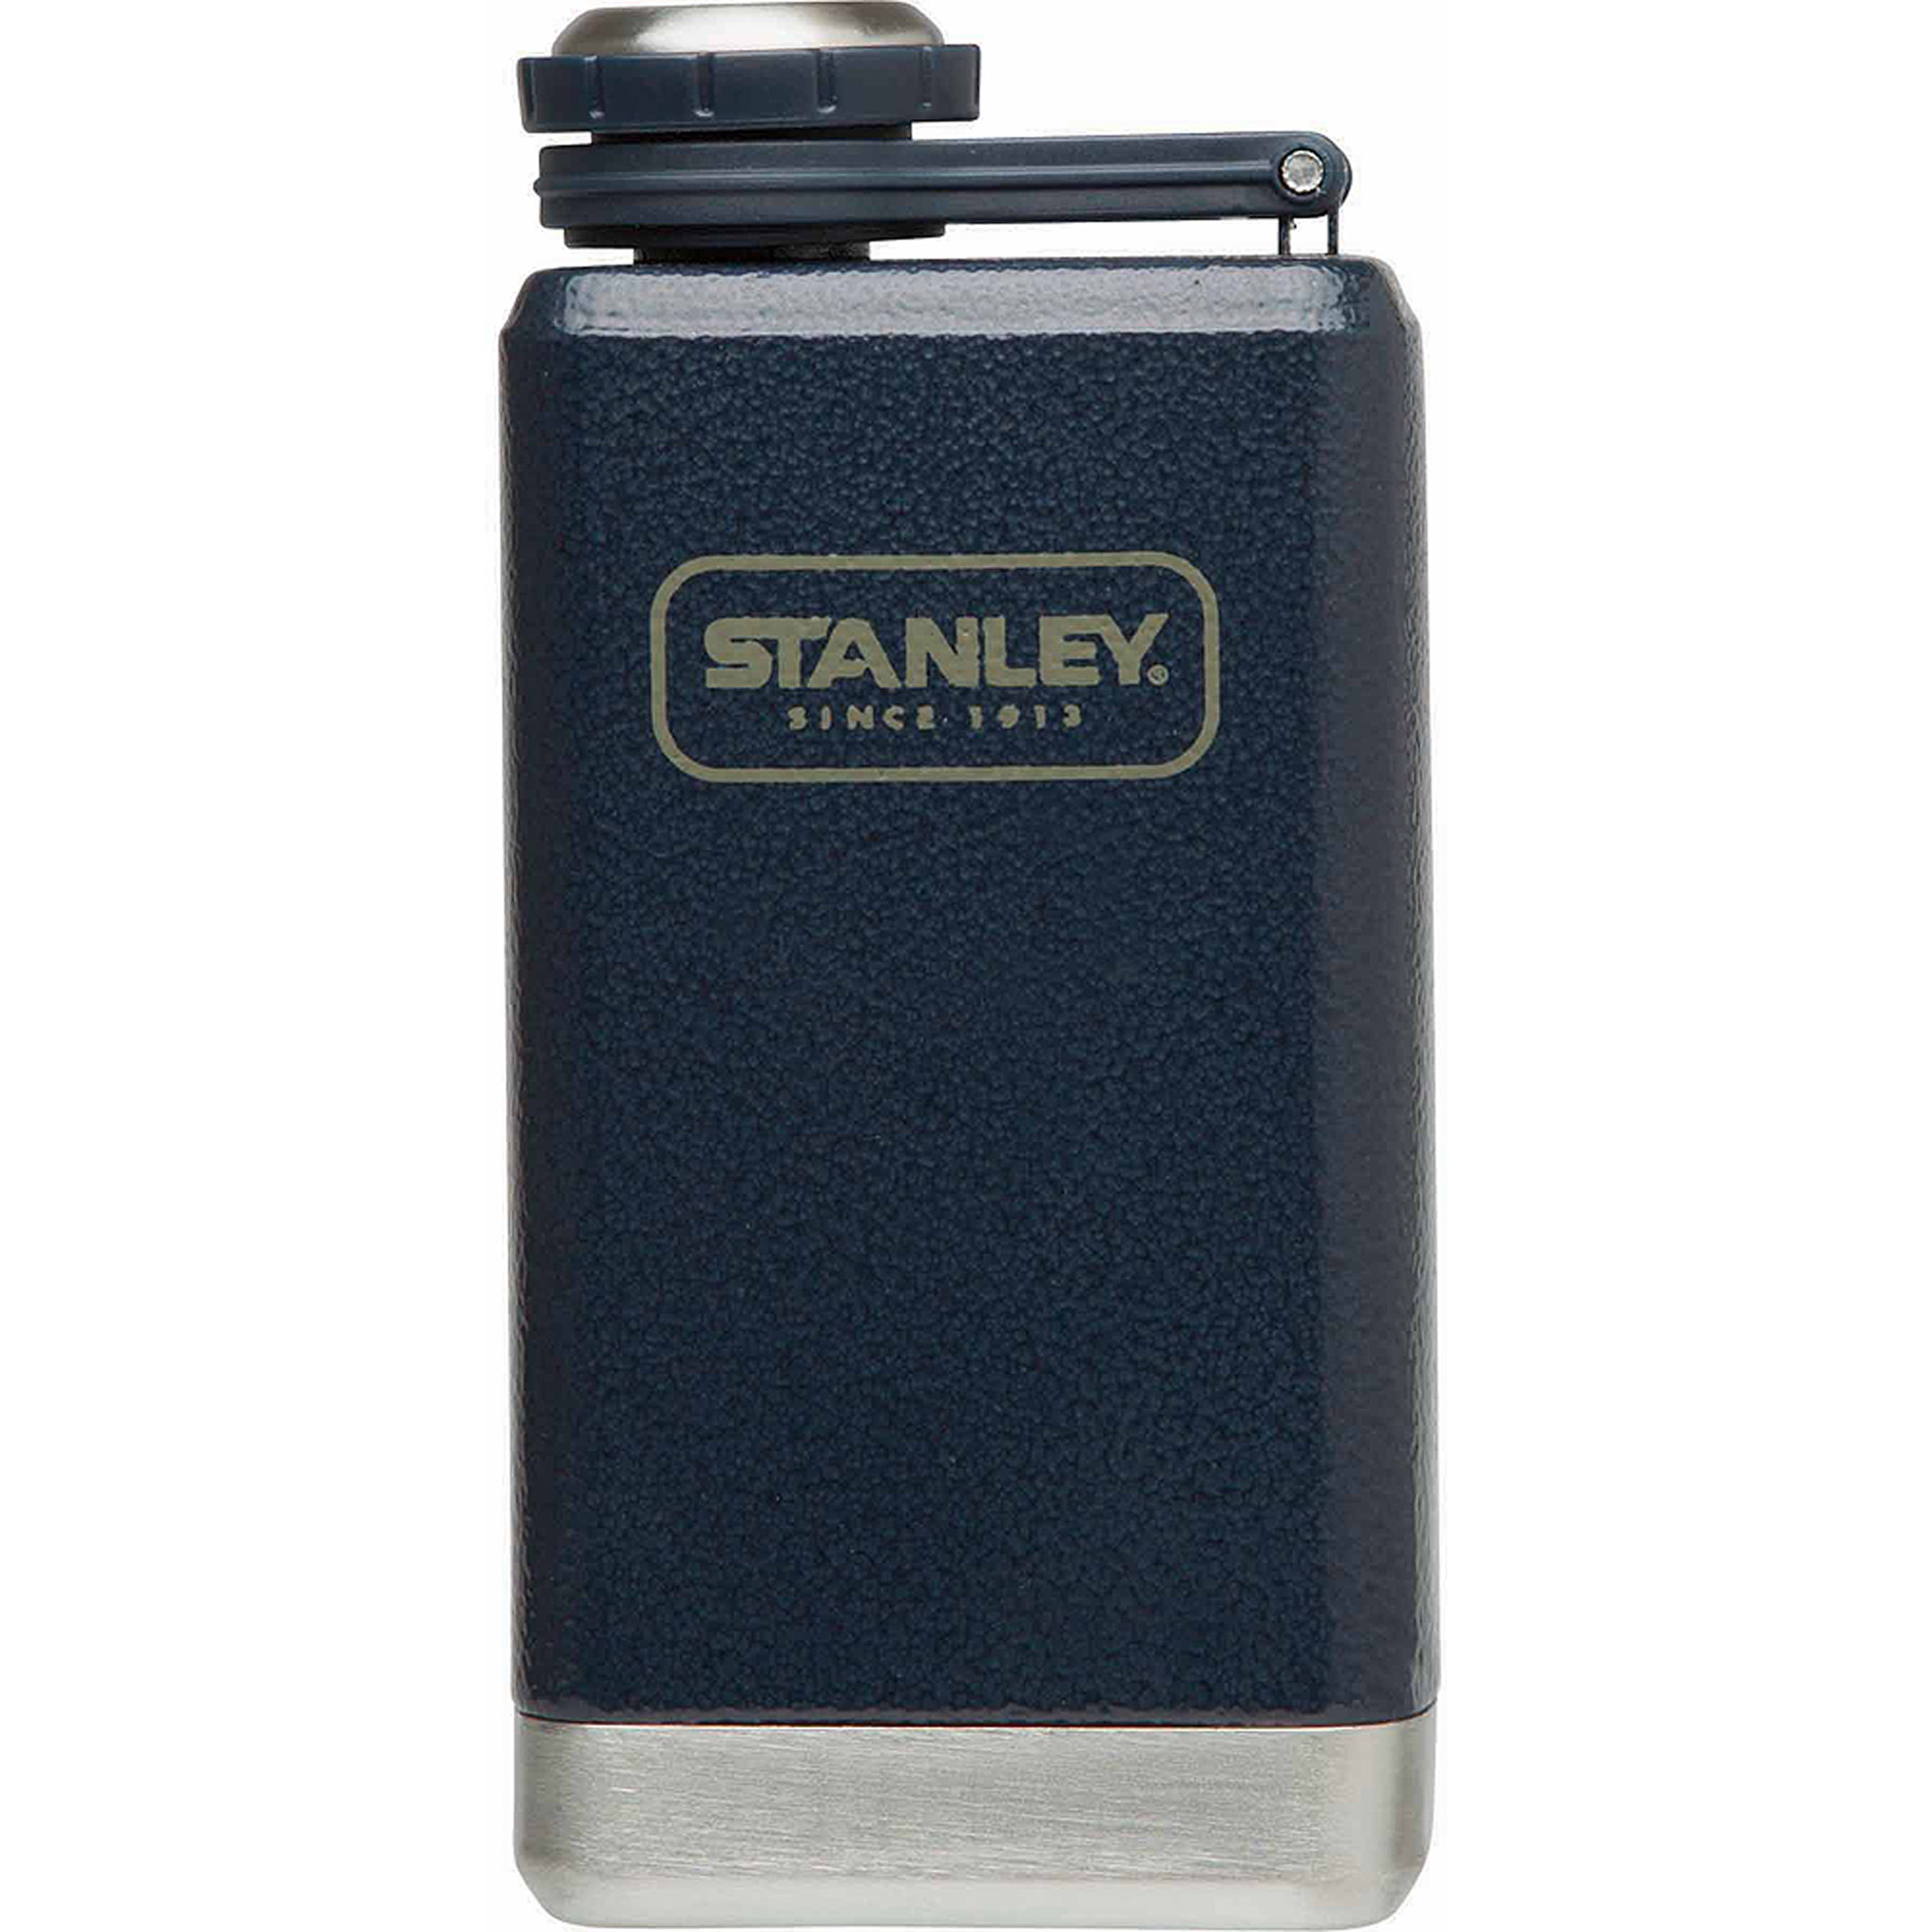 Stanley Adventure Stainless Steel Flask, 5 oz, Navy